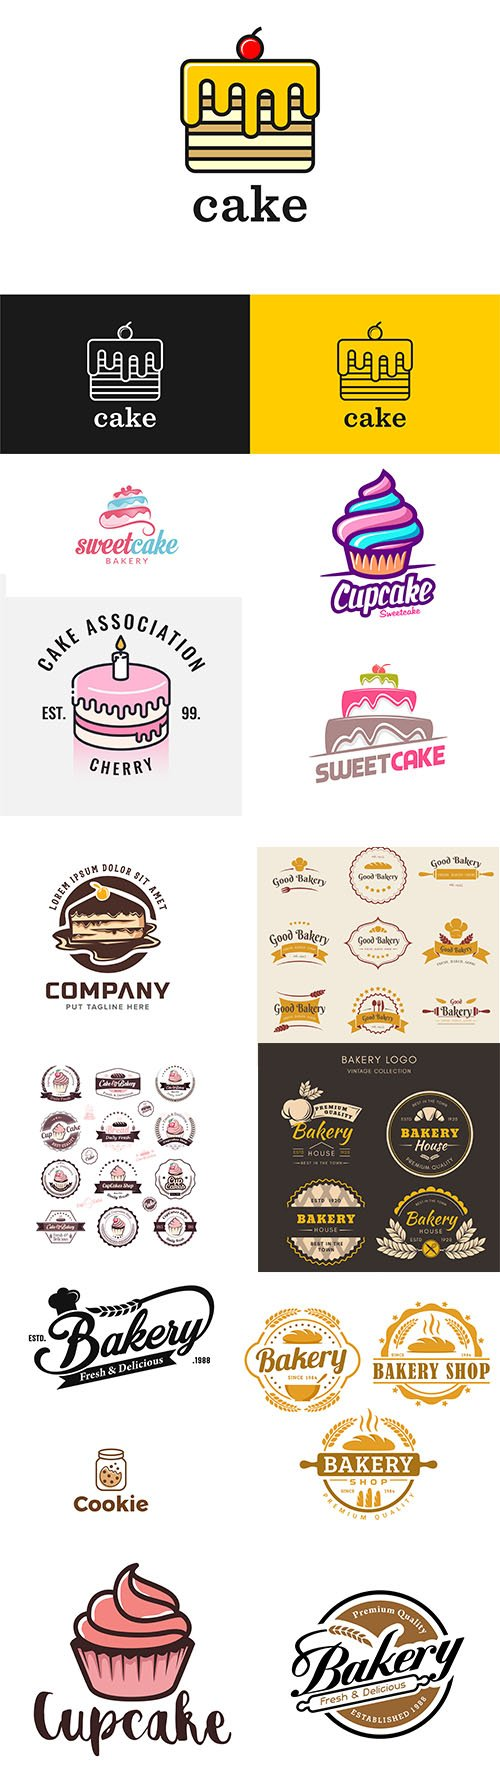 Bakery cake logo template collection vol 2